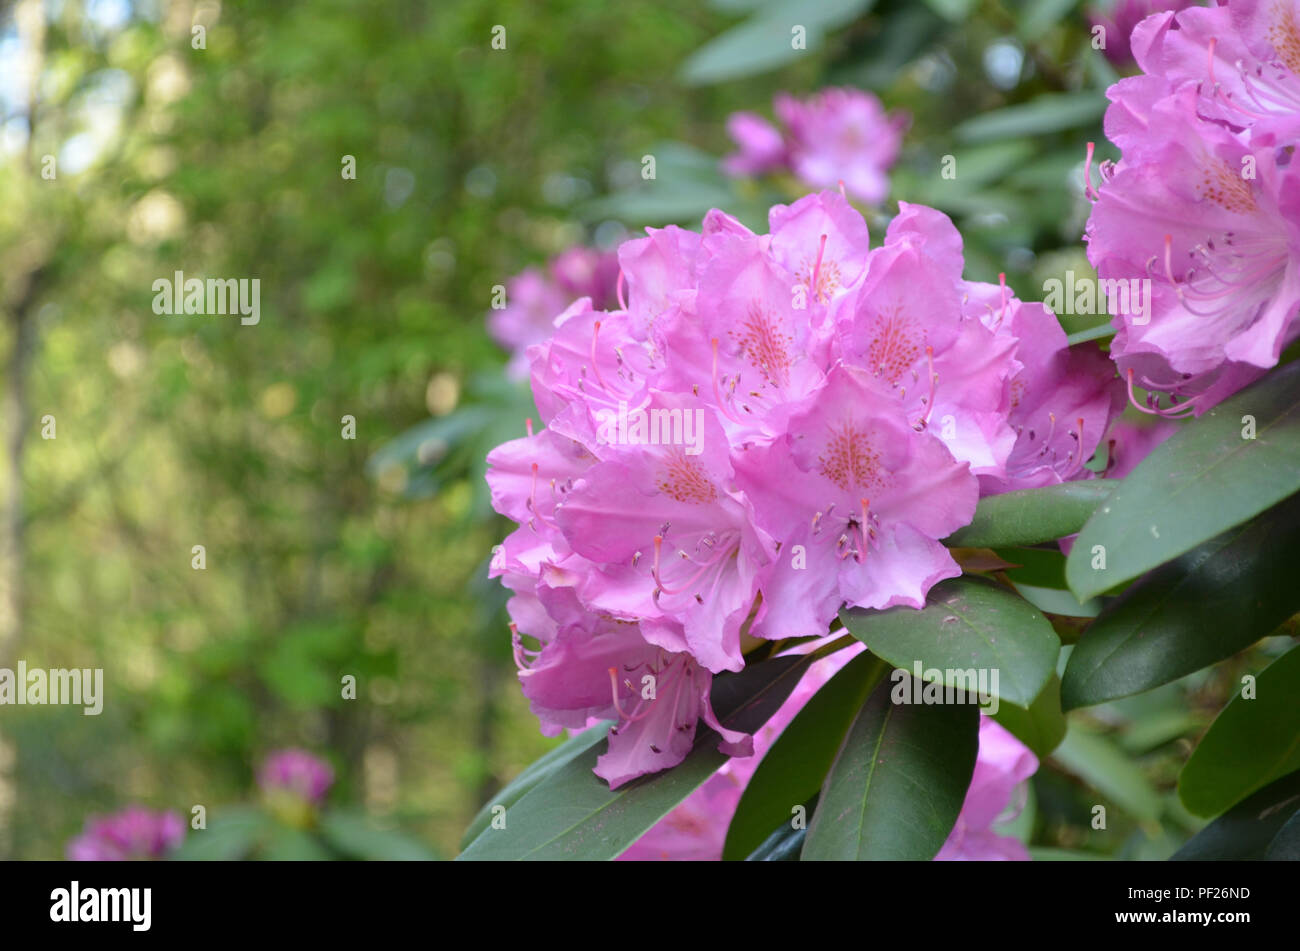 Pink Flowering Rhododendron Bush With Big Pink Flowers Stock Photo